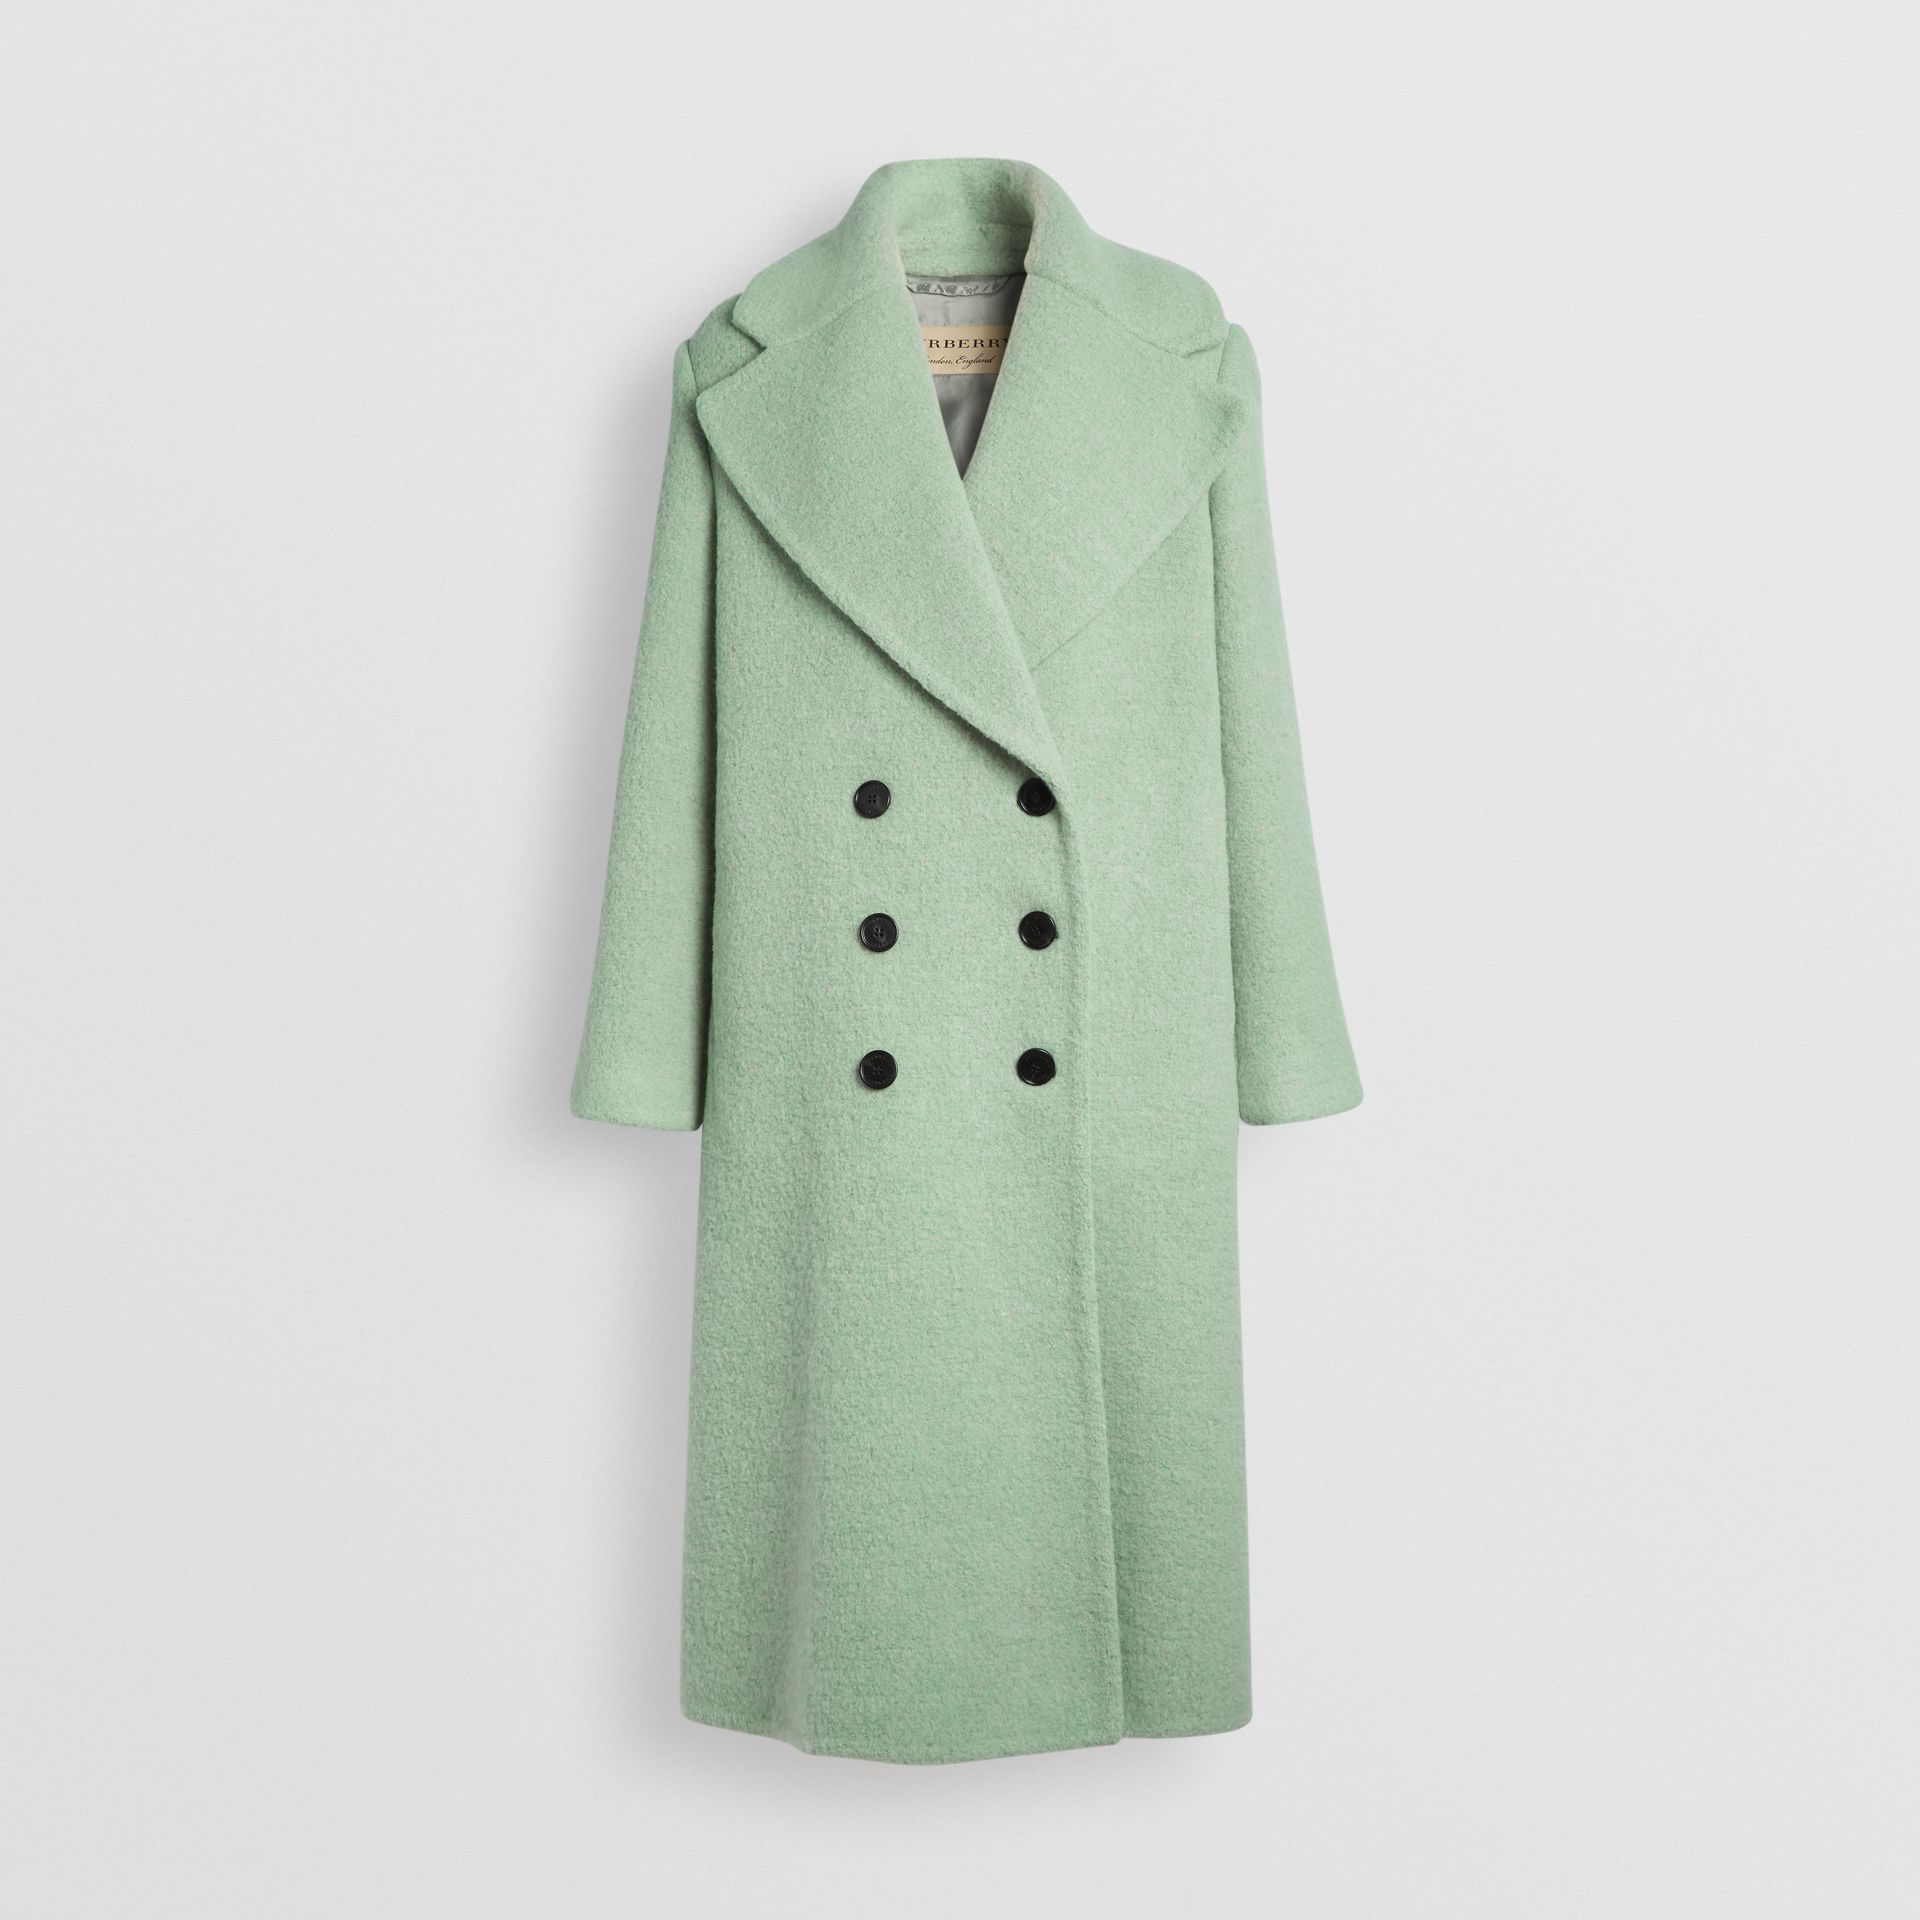 Double-faced Wool Alpaca Blend Cocoon Coat in Celadon Green - Women | Burberry - gallery image 3